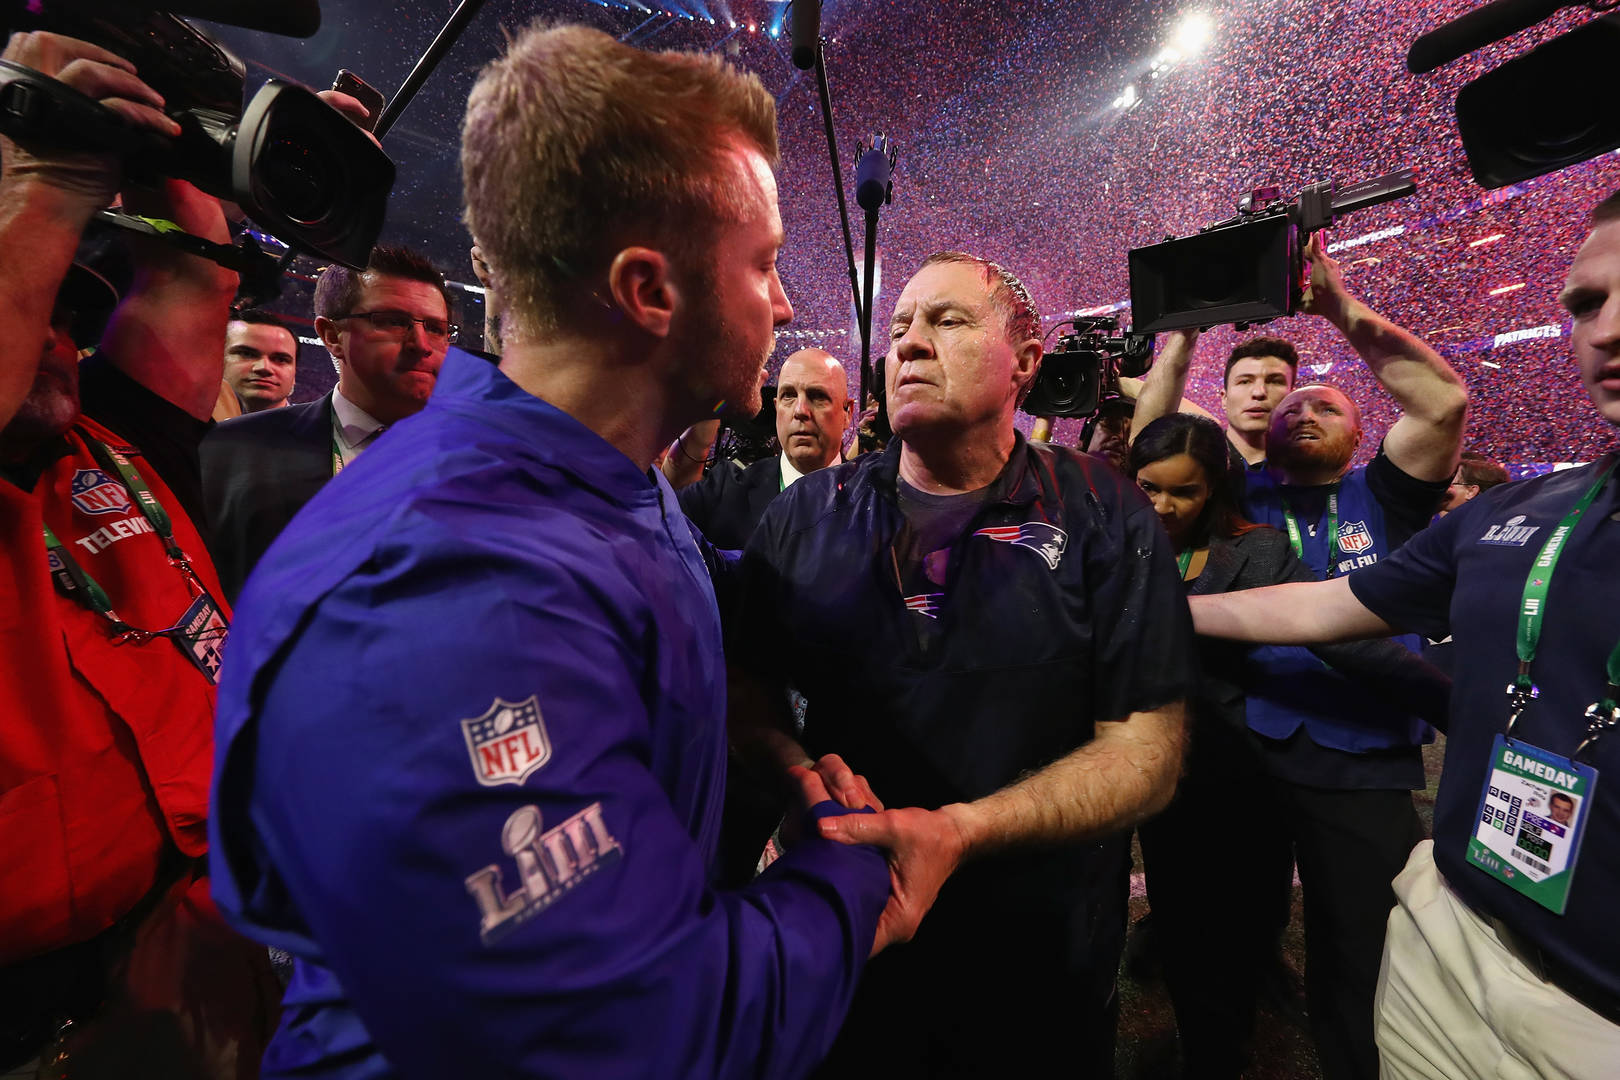 Sean McVay says he overthought Rams' game plan for Super Bowl LIII